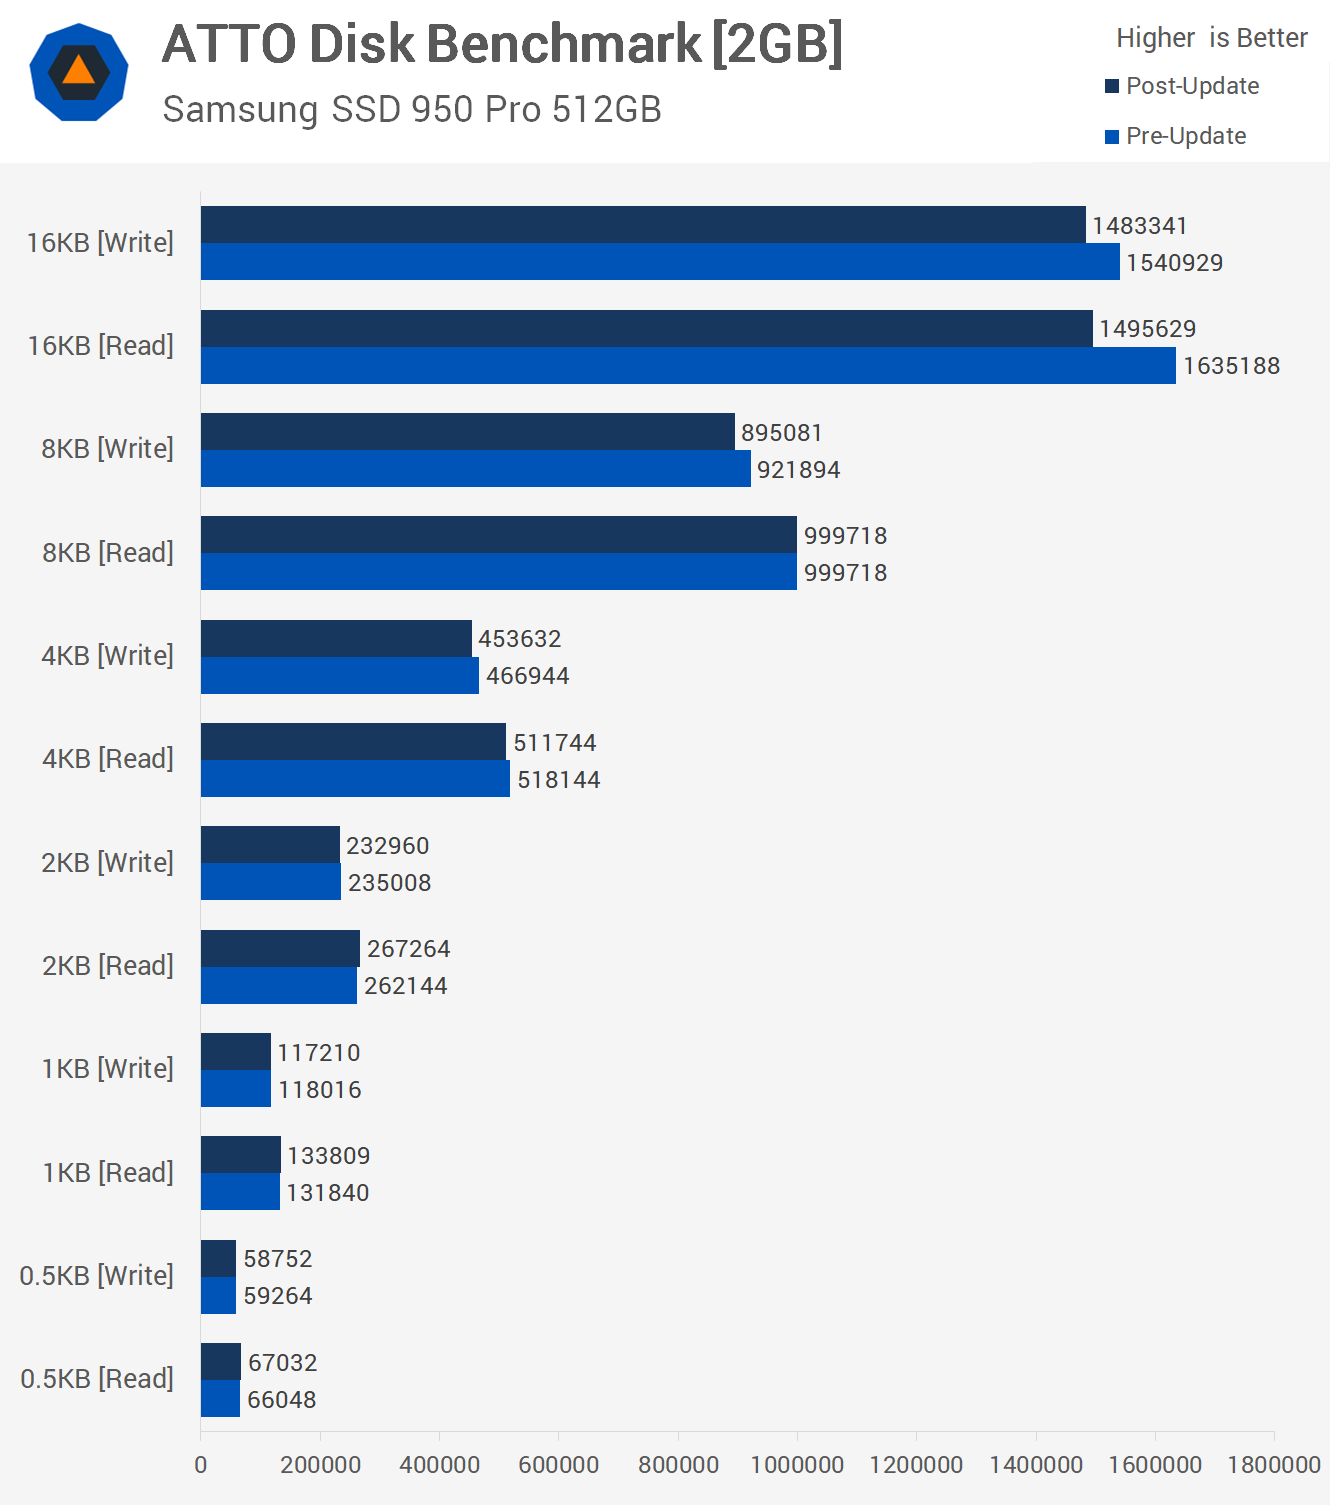 Testing Windows 10 Performance Before and After the Meltdown Flaw